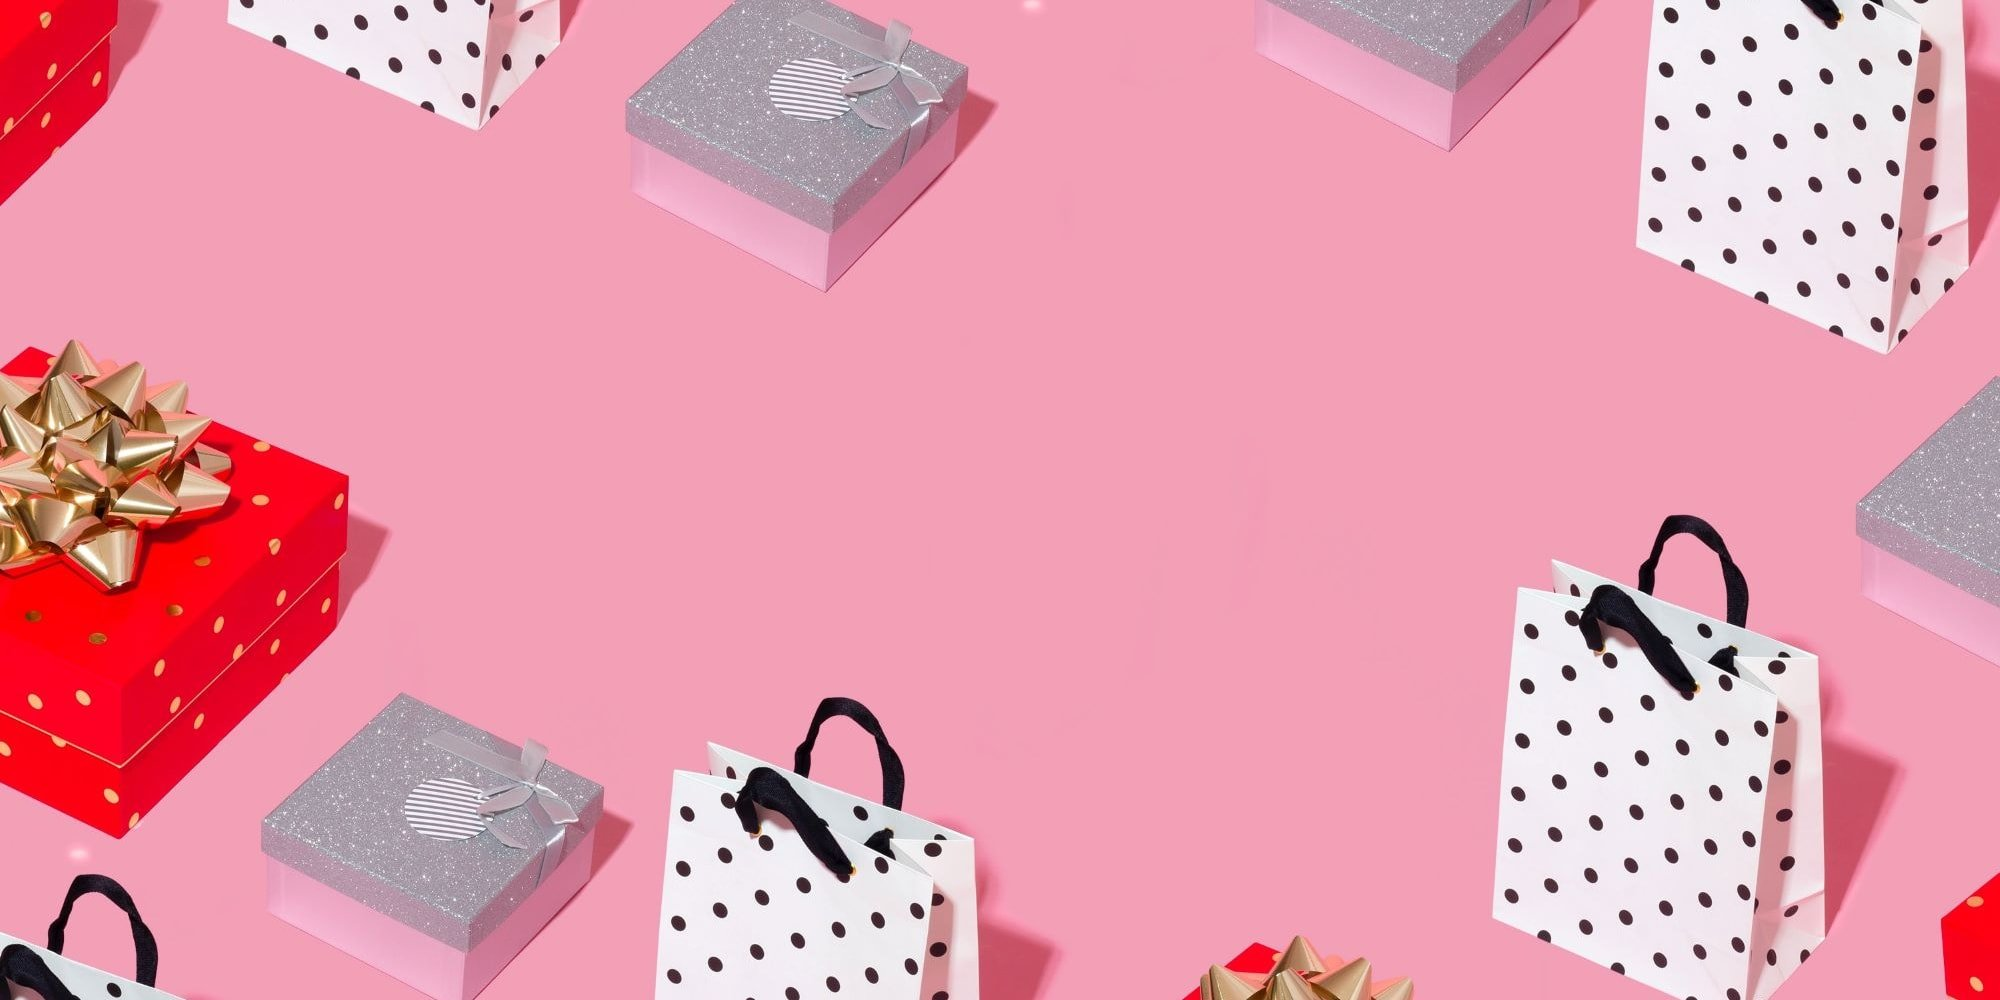 Pink background with assorted gift boxes and bags